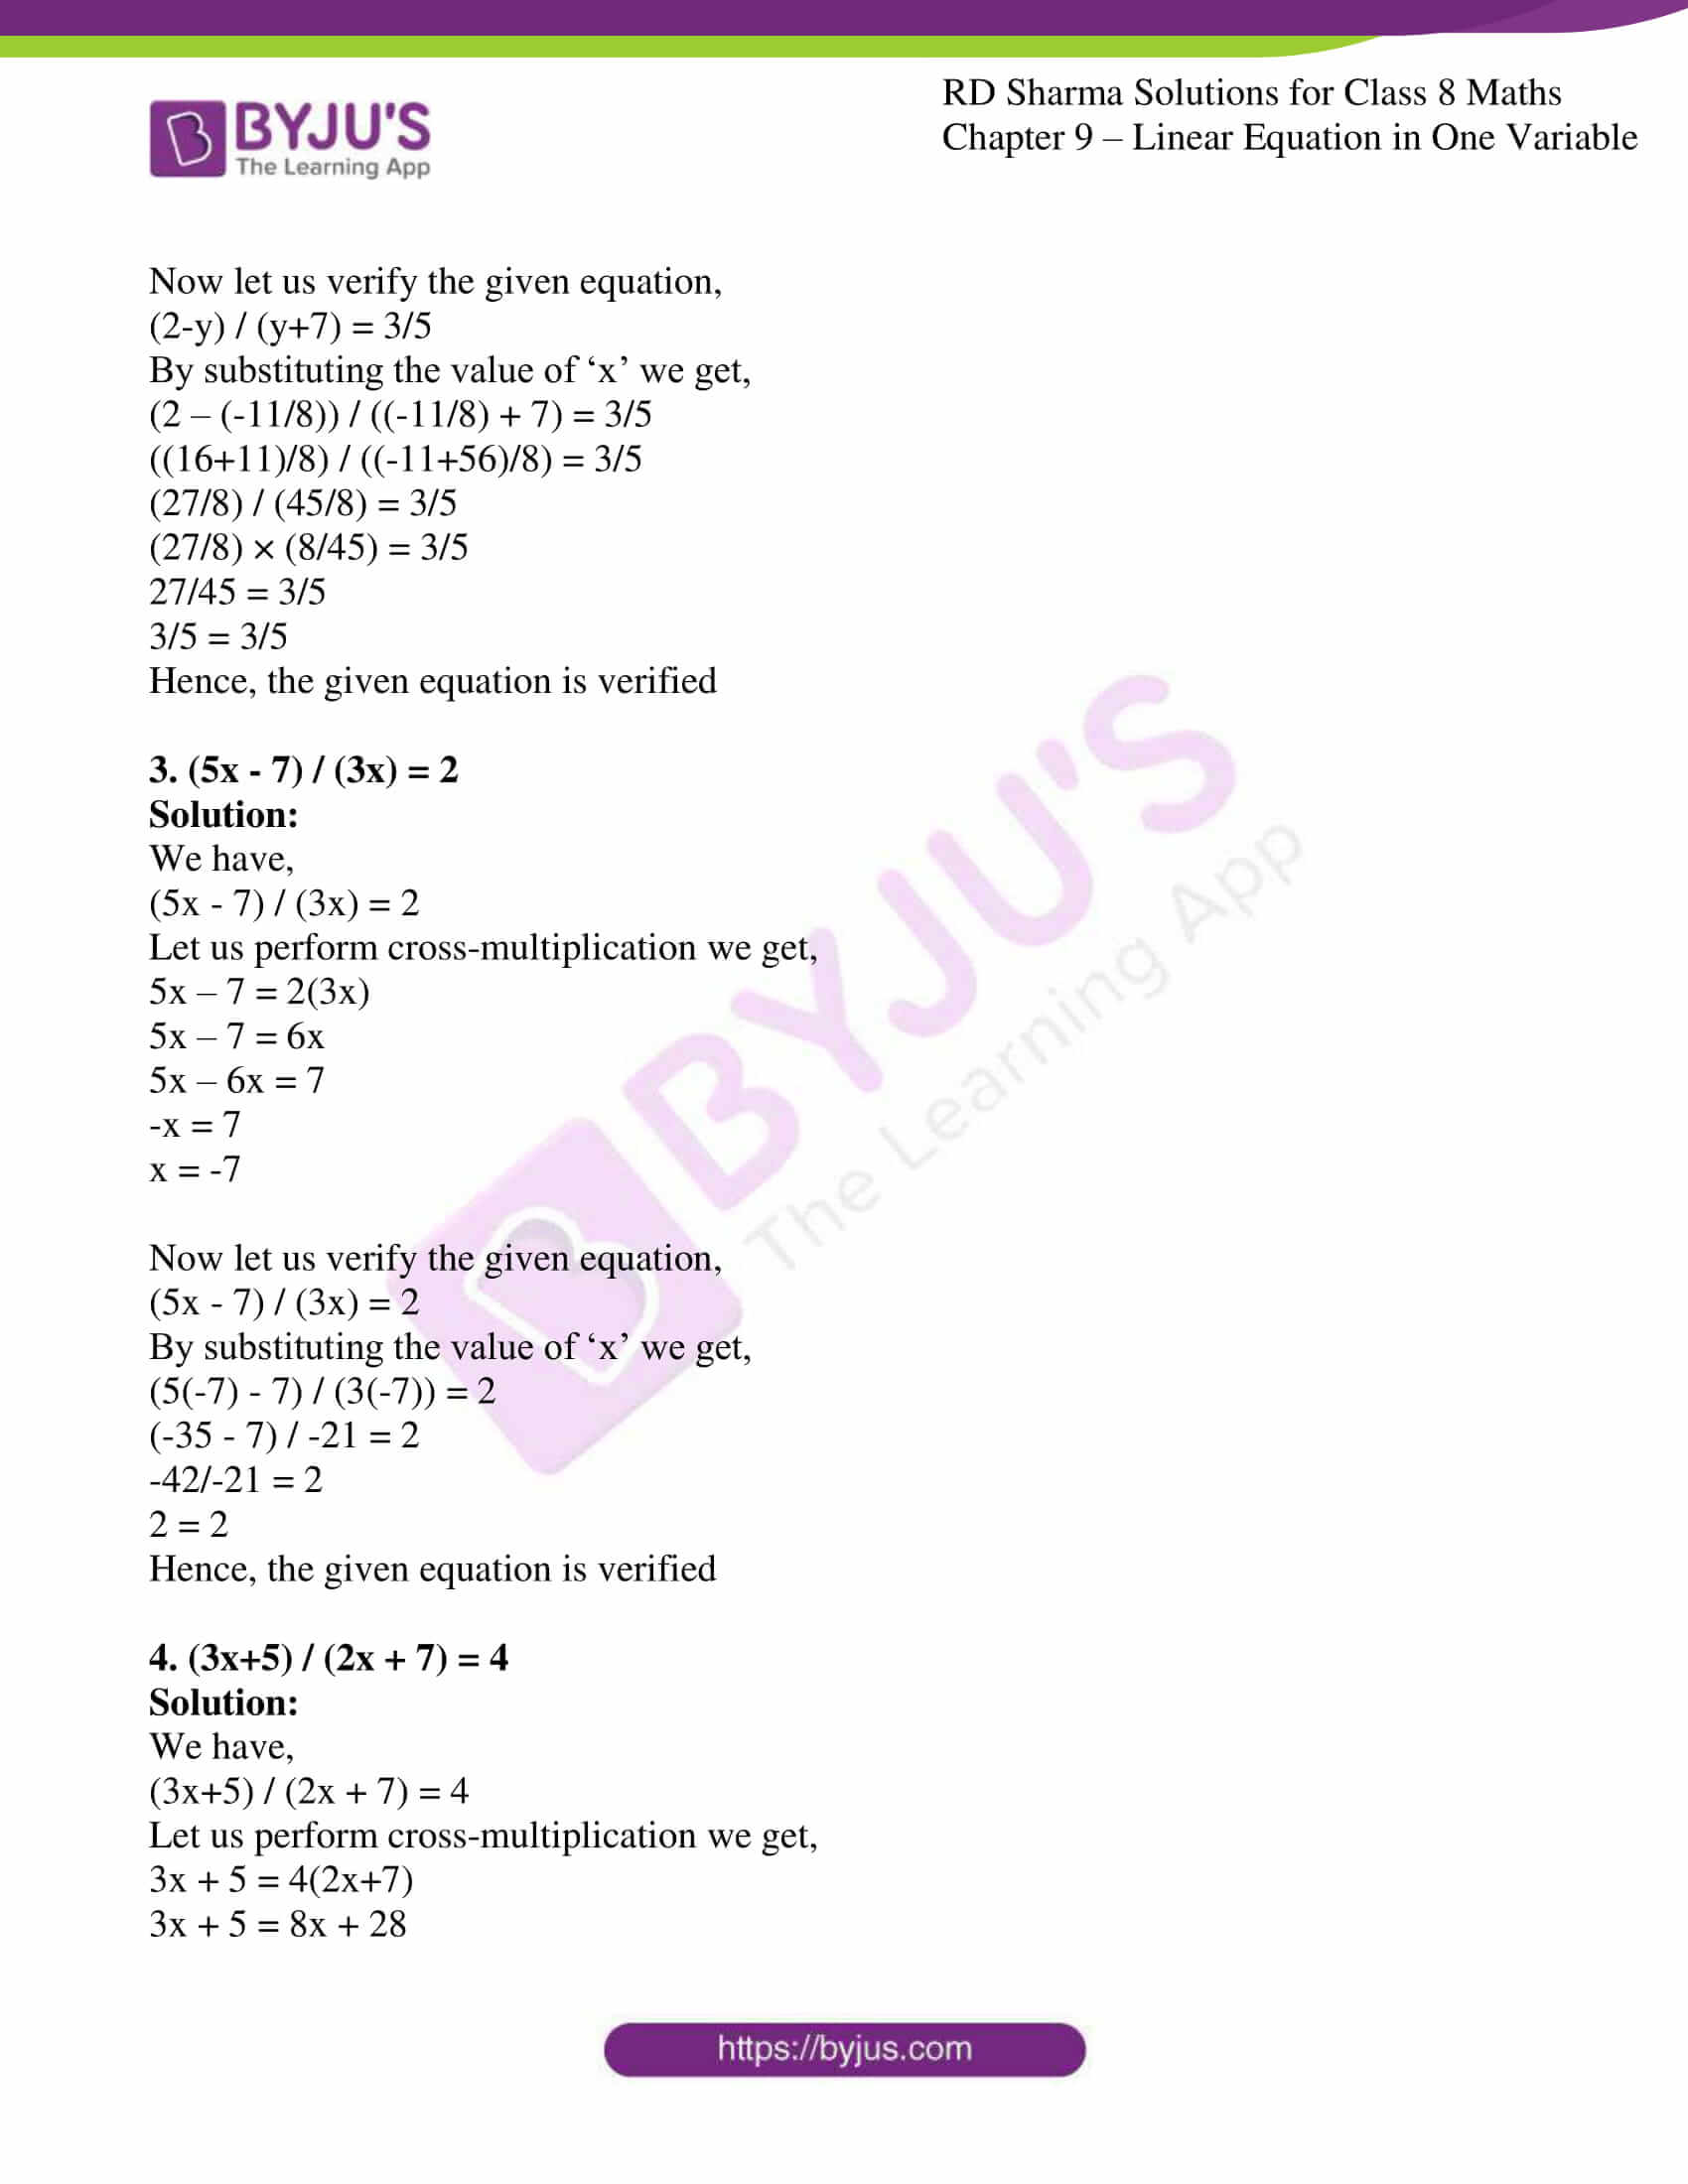 rd sharma class 8 maths chapter 9 exercise 3 02